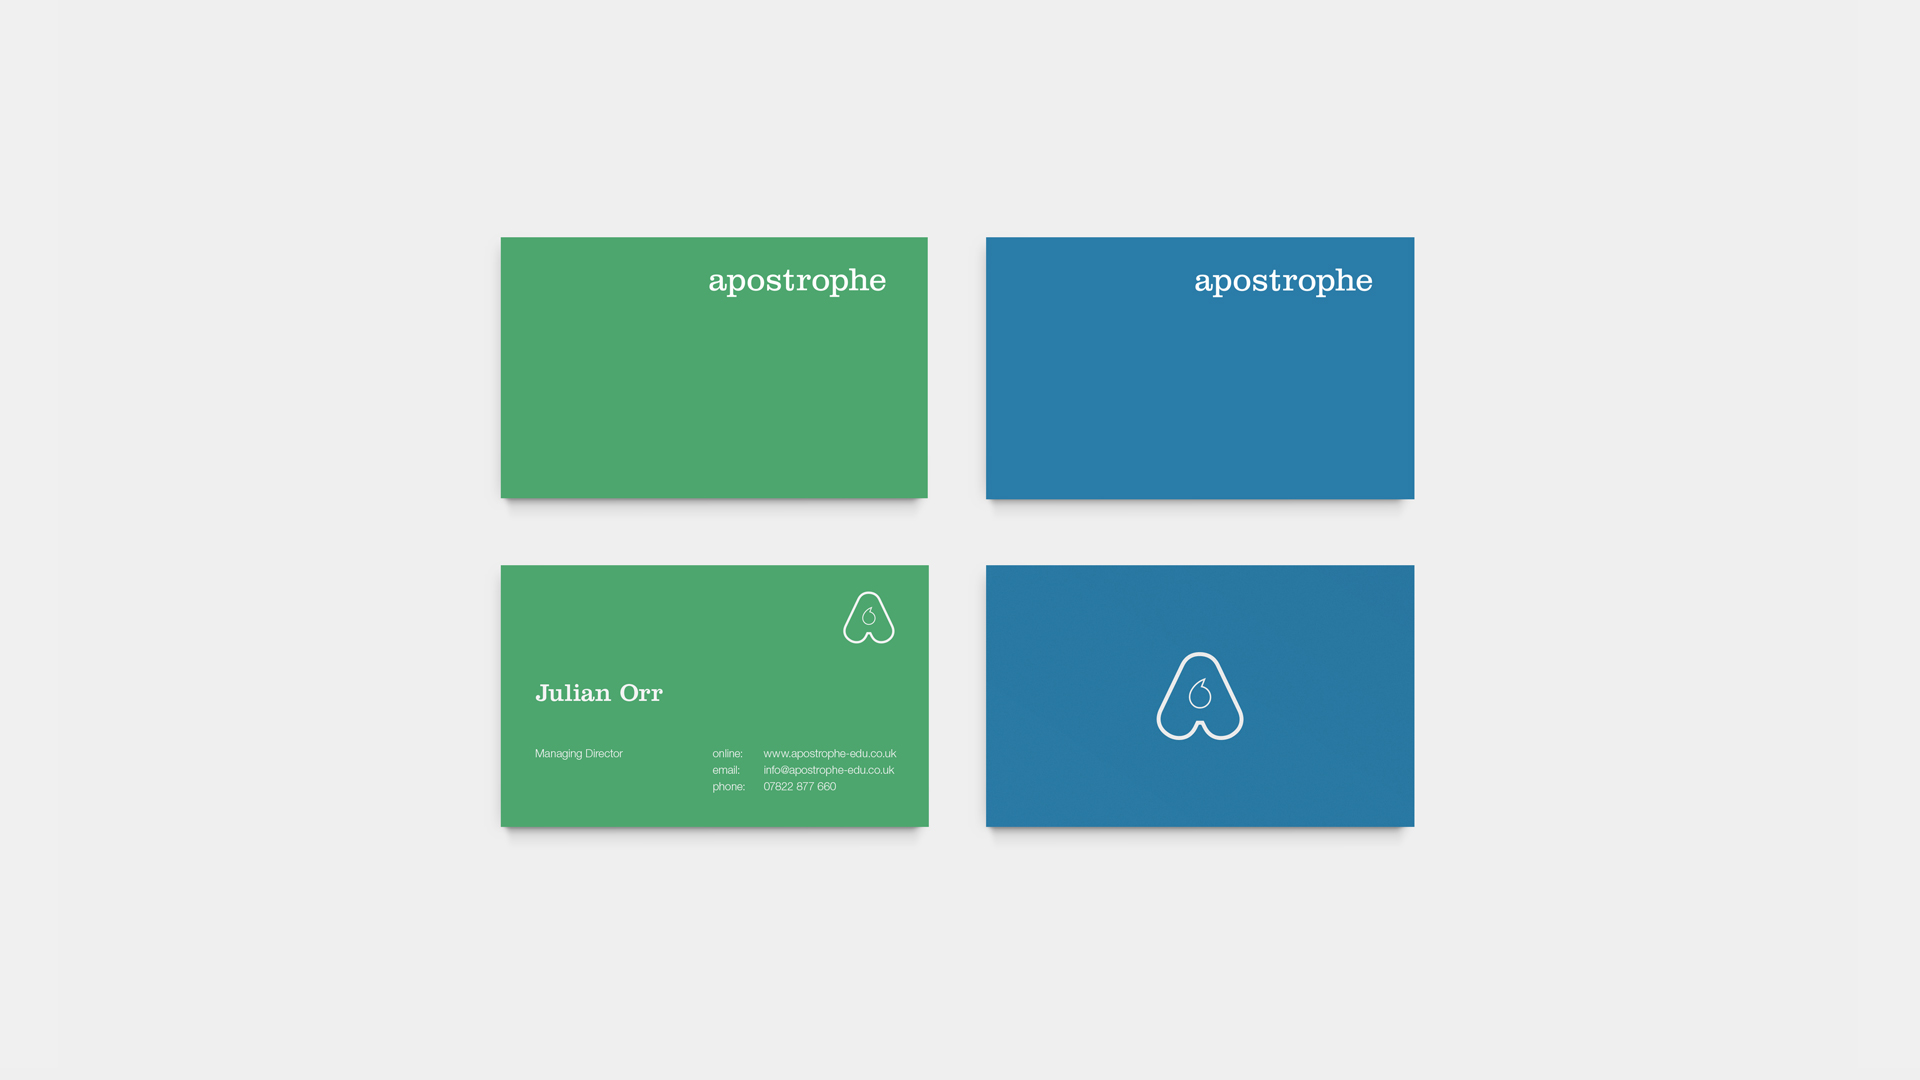 Apostrophe business card design